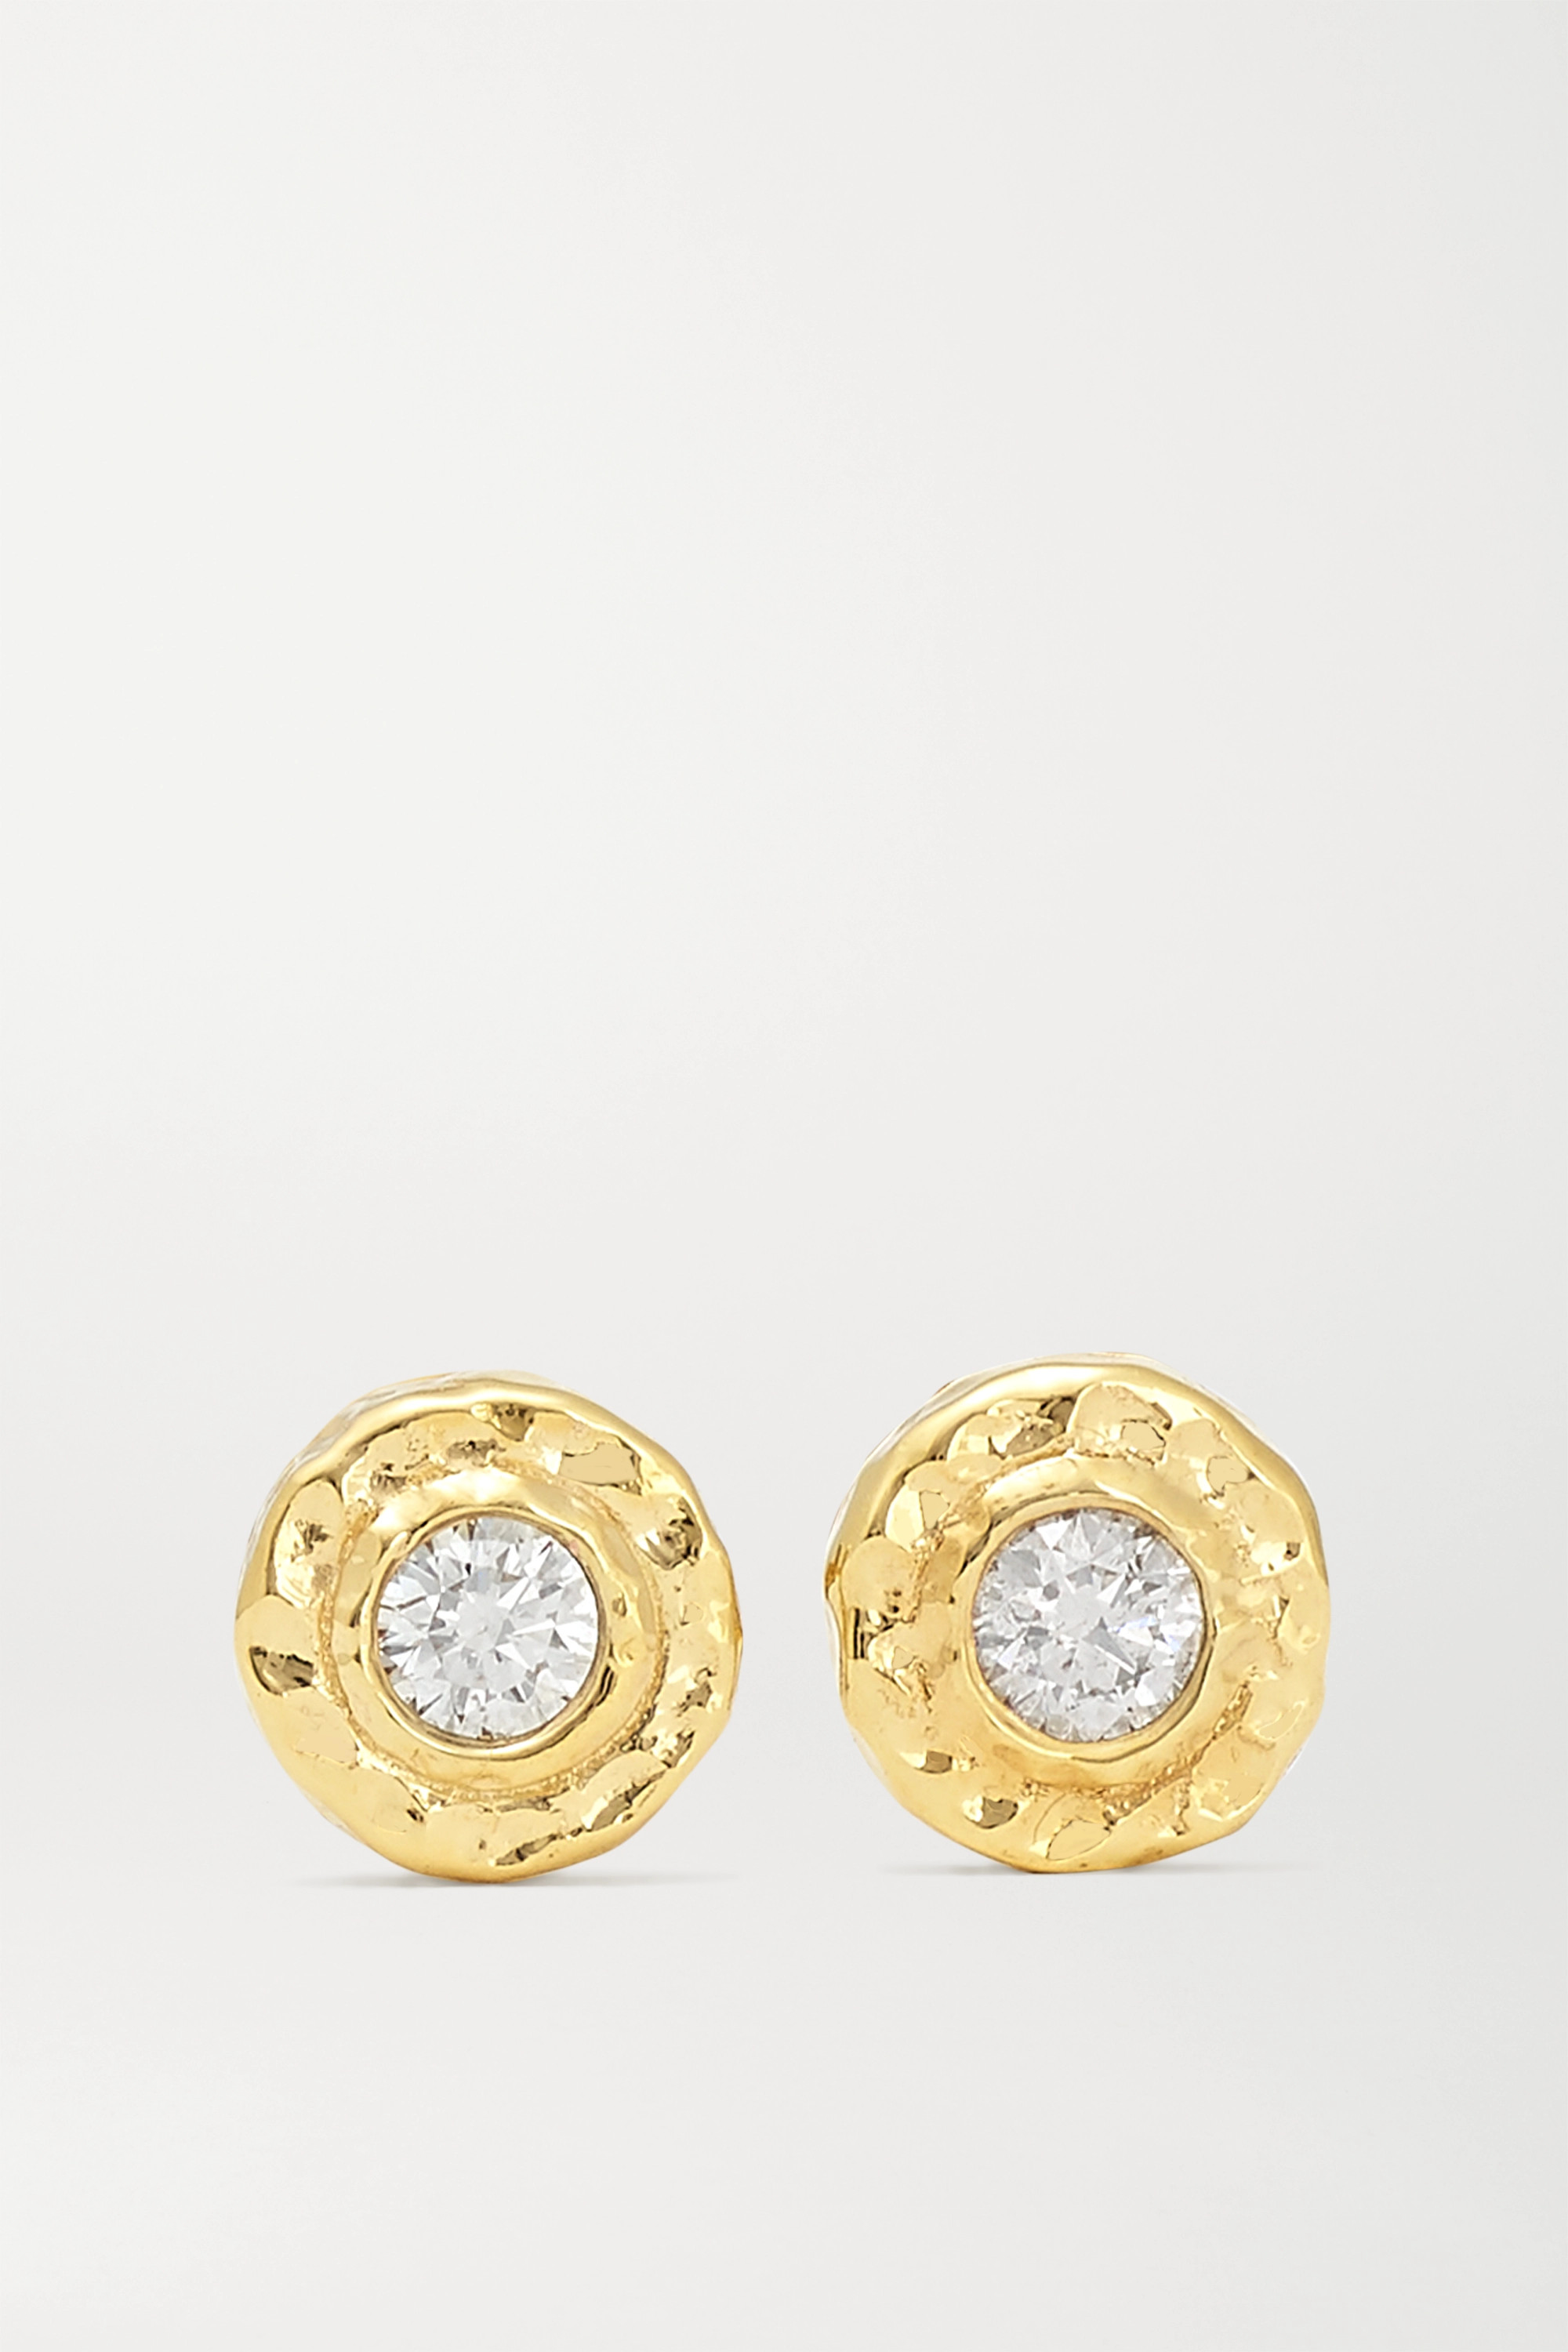 Octavia Elizabeth + NET SUSTAIN Nestling Gem 18-karat gold diamond earrings